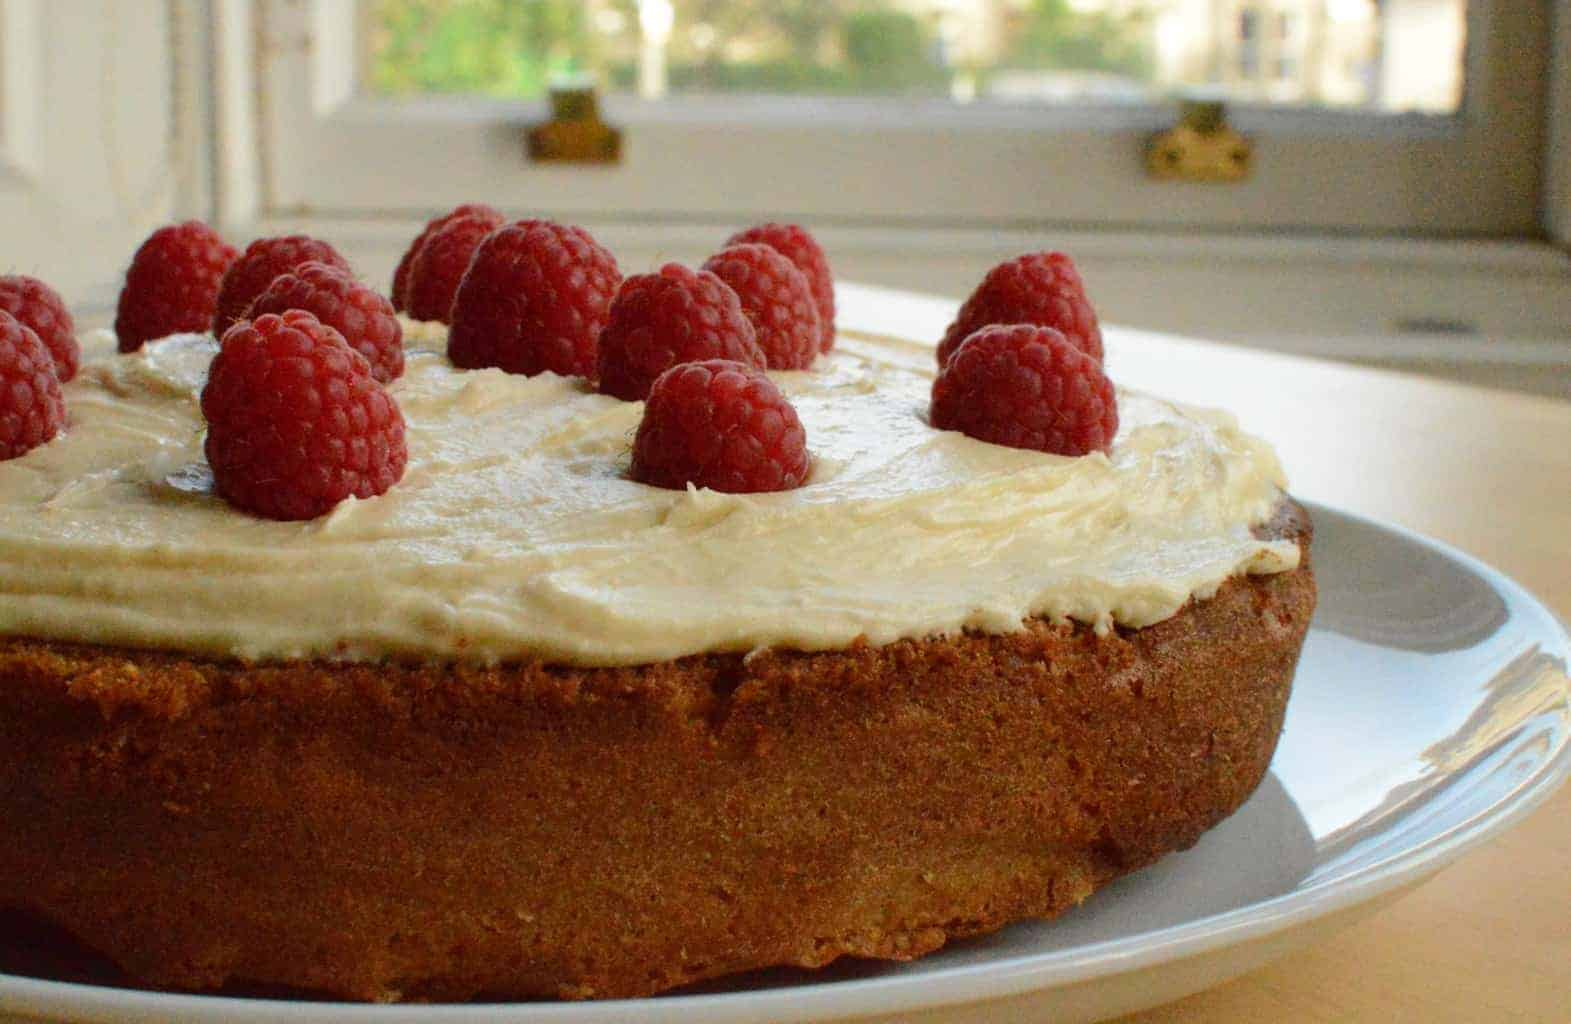 Pimm's and Raspberry Cake, just because